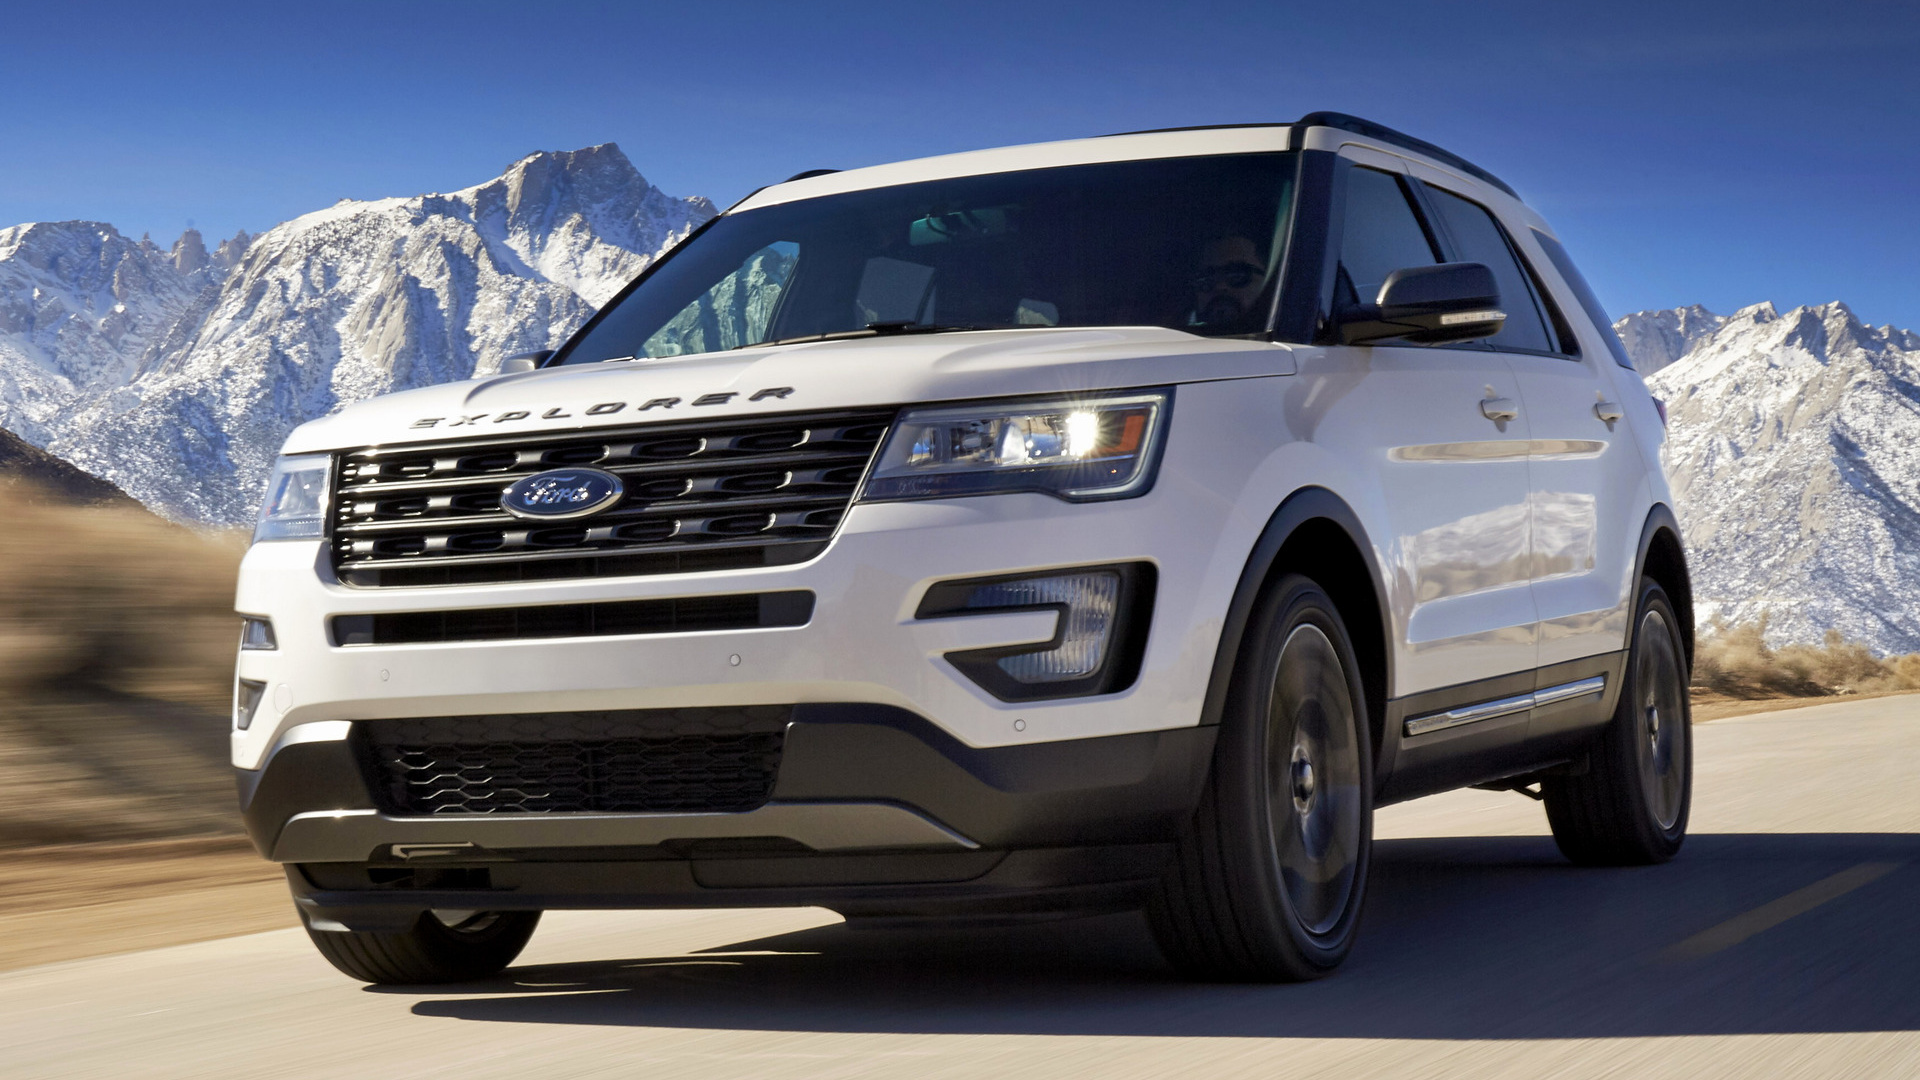 1920x1080 - Ford Explorer Wallpapers 5